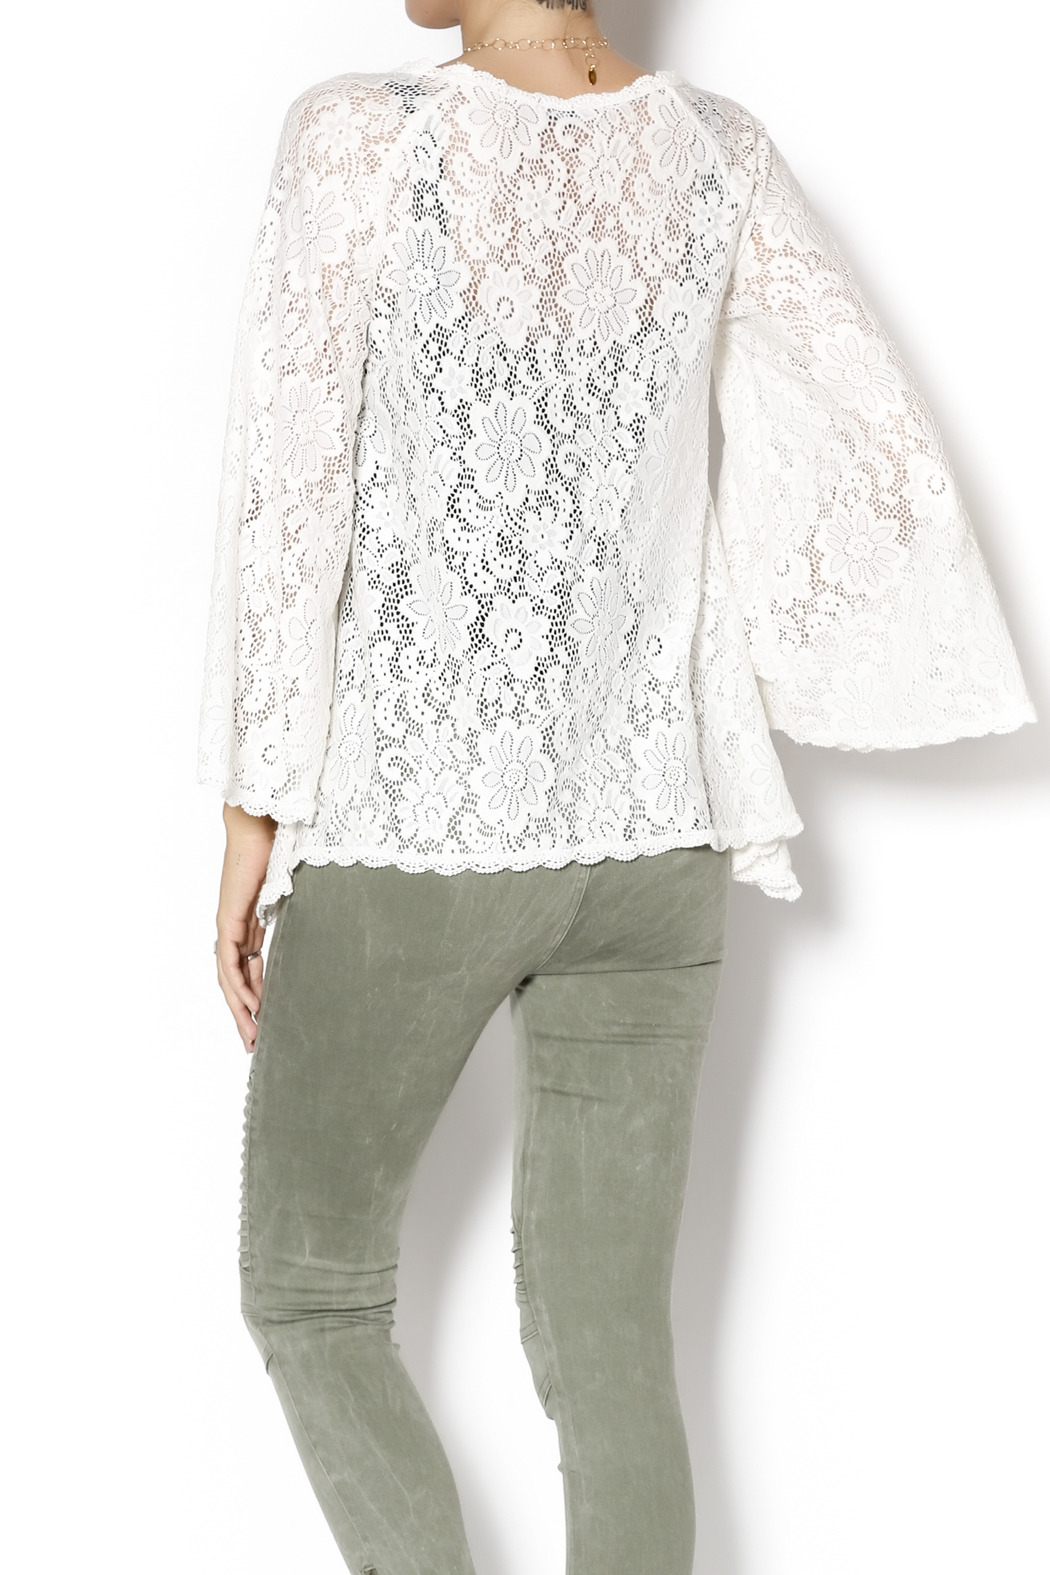 Gina Louise Lace Bell Sleeve Top - Back Cropped Image